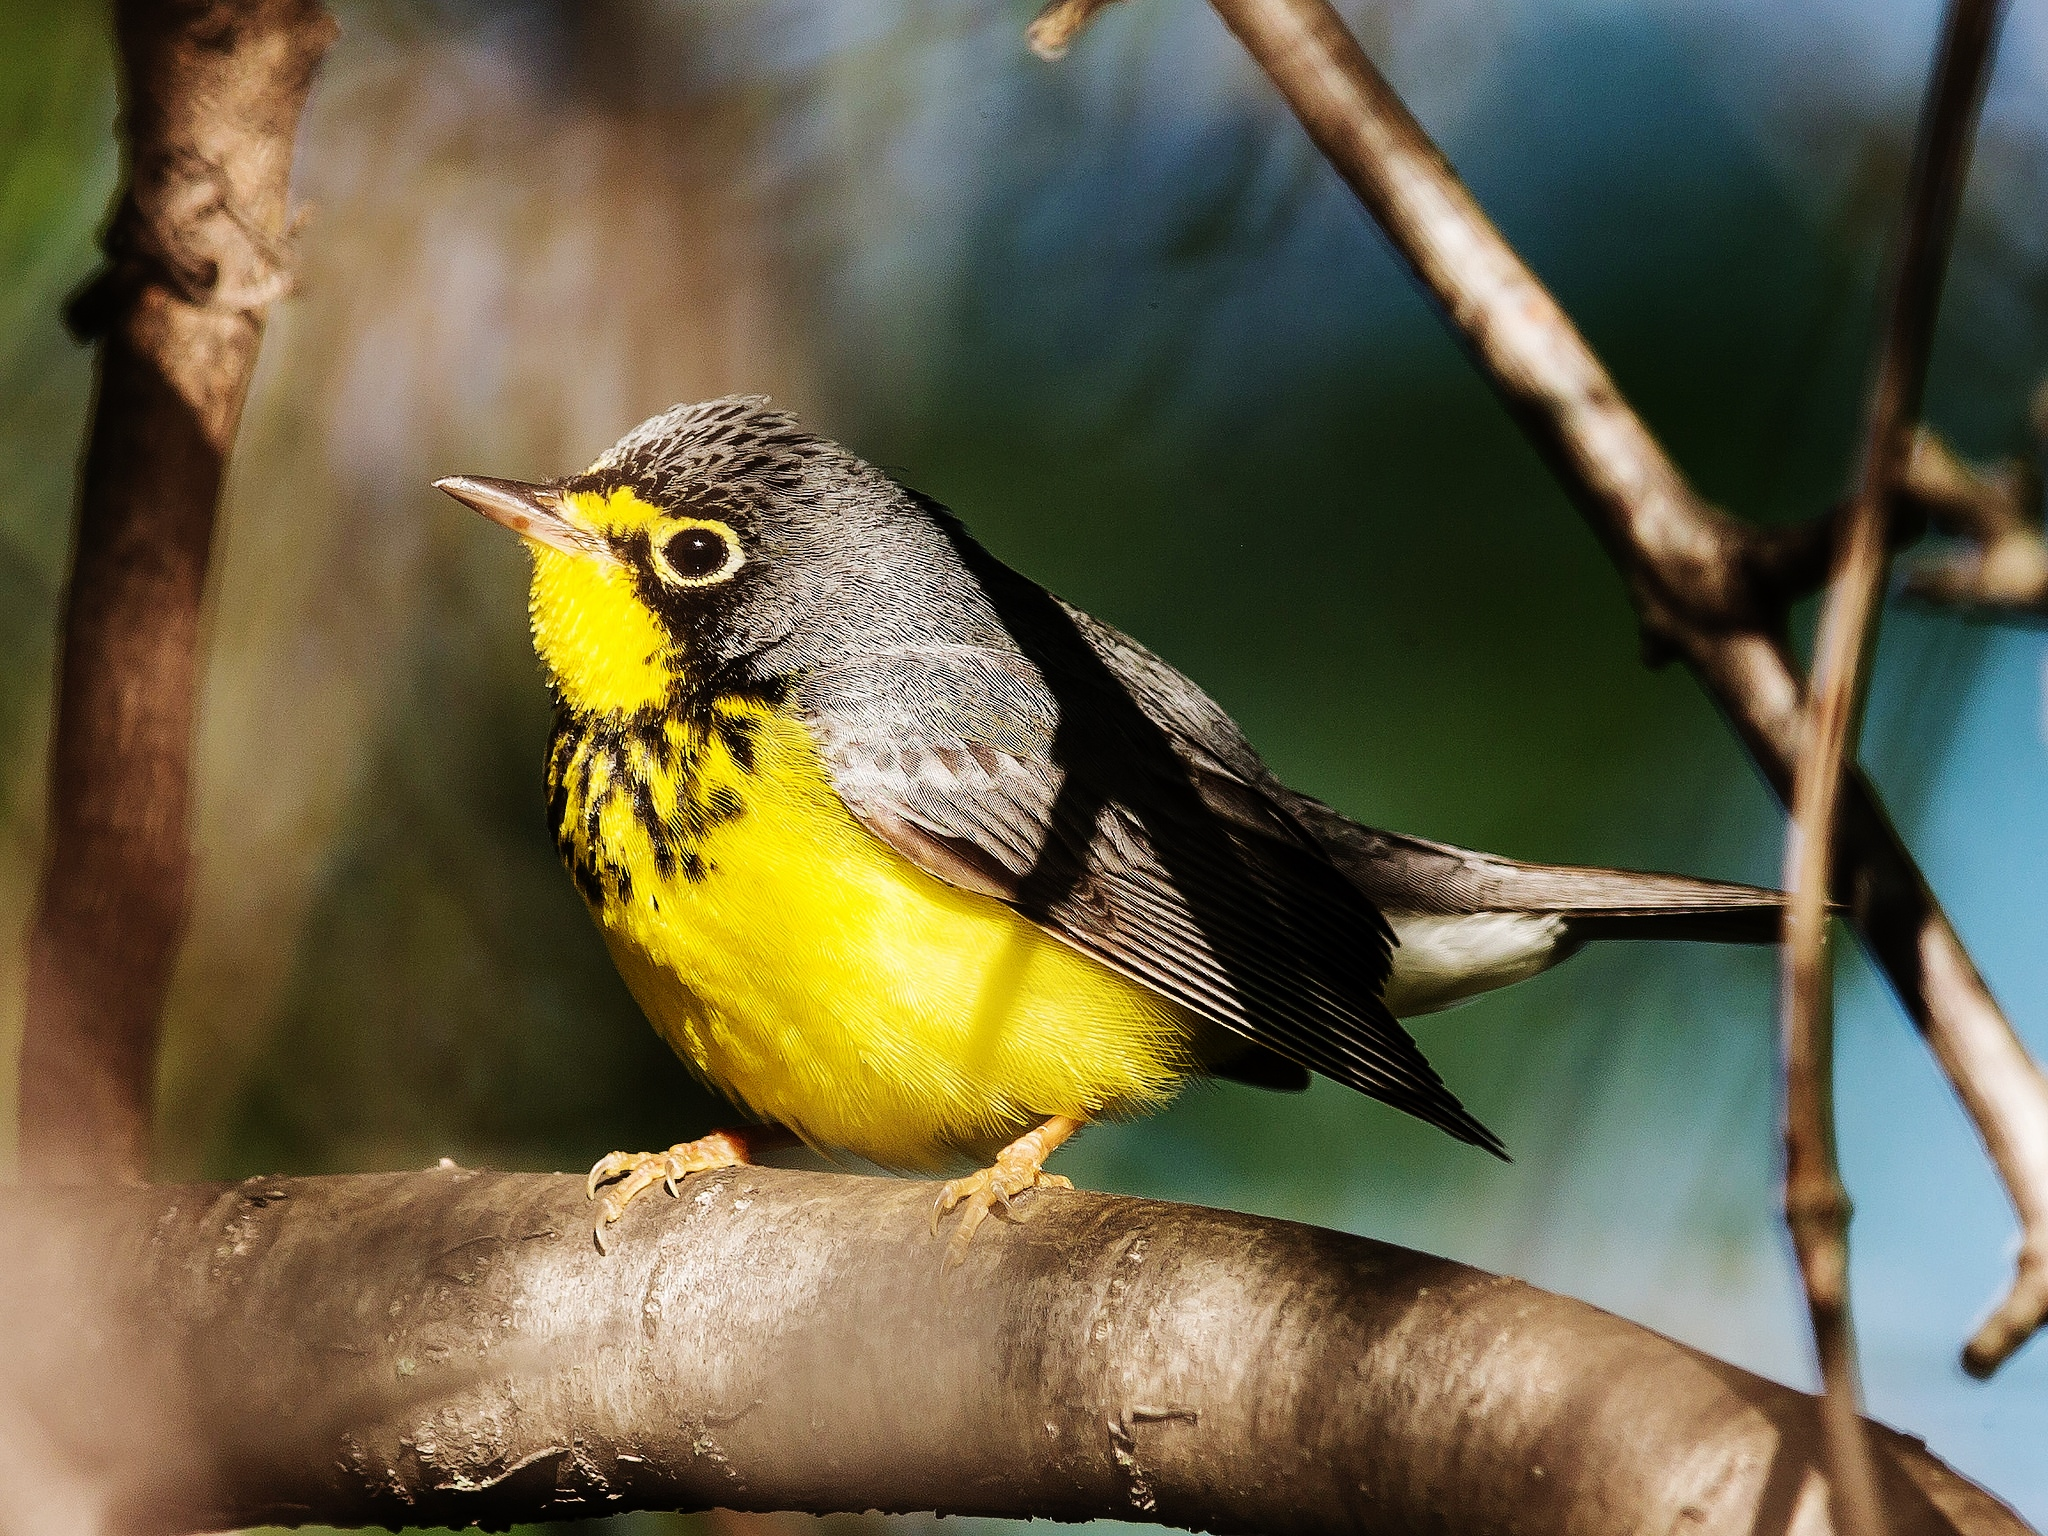 Field Notes: Canada warbler